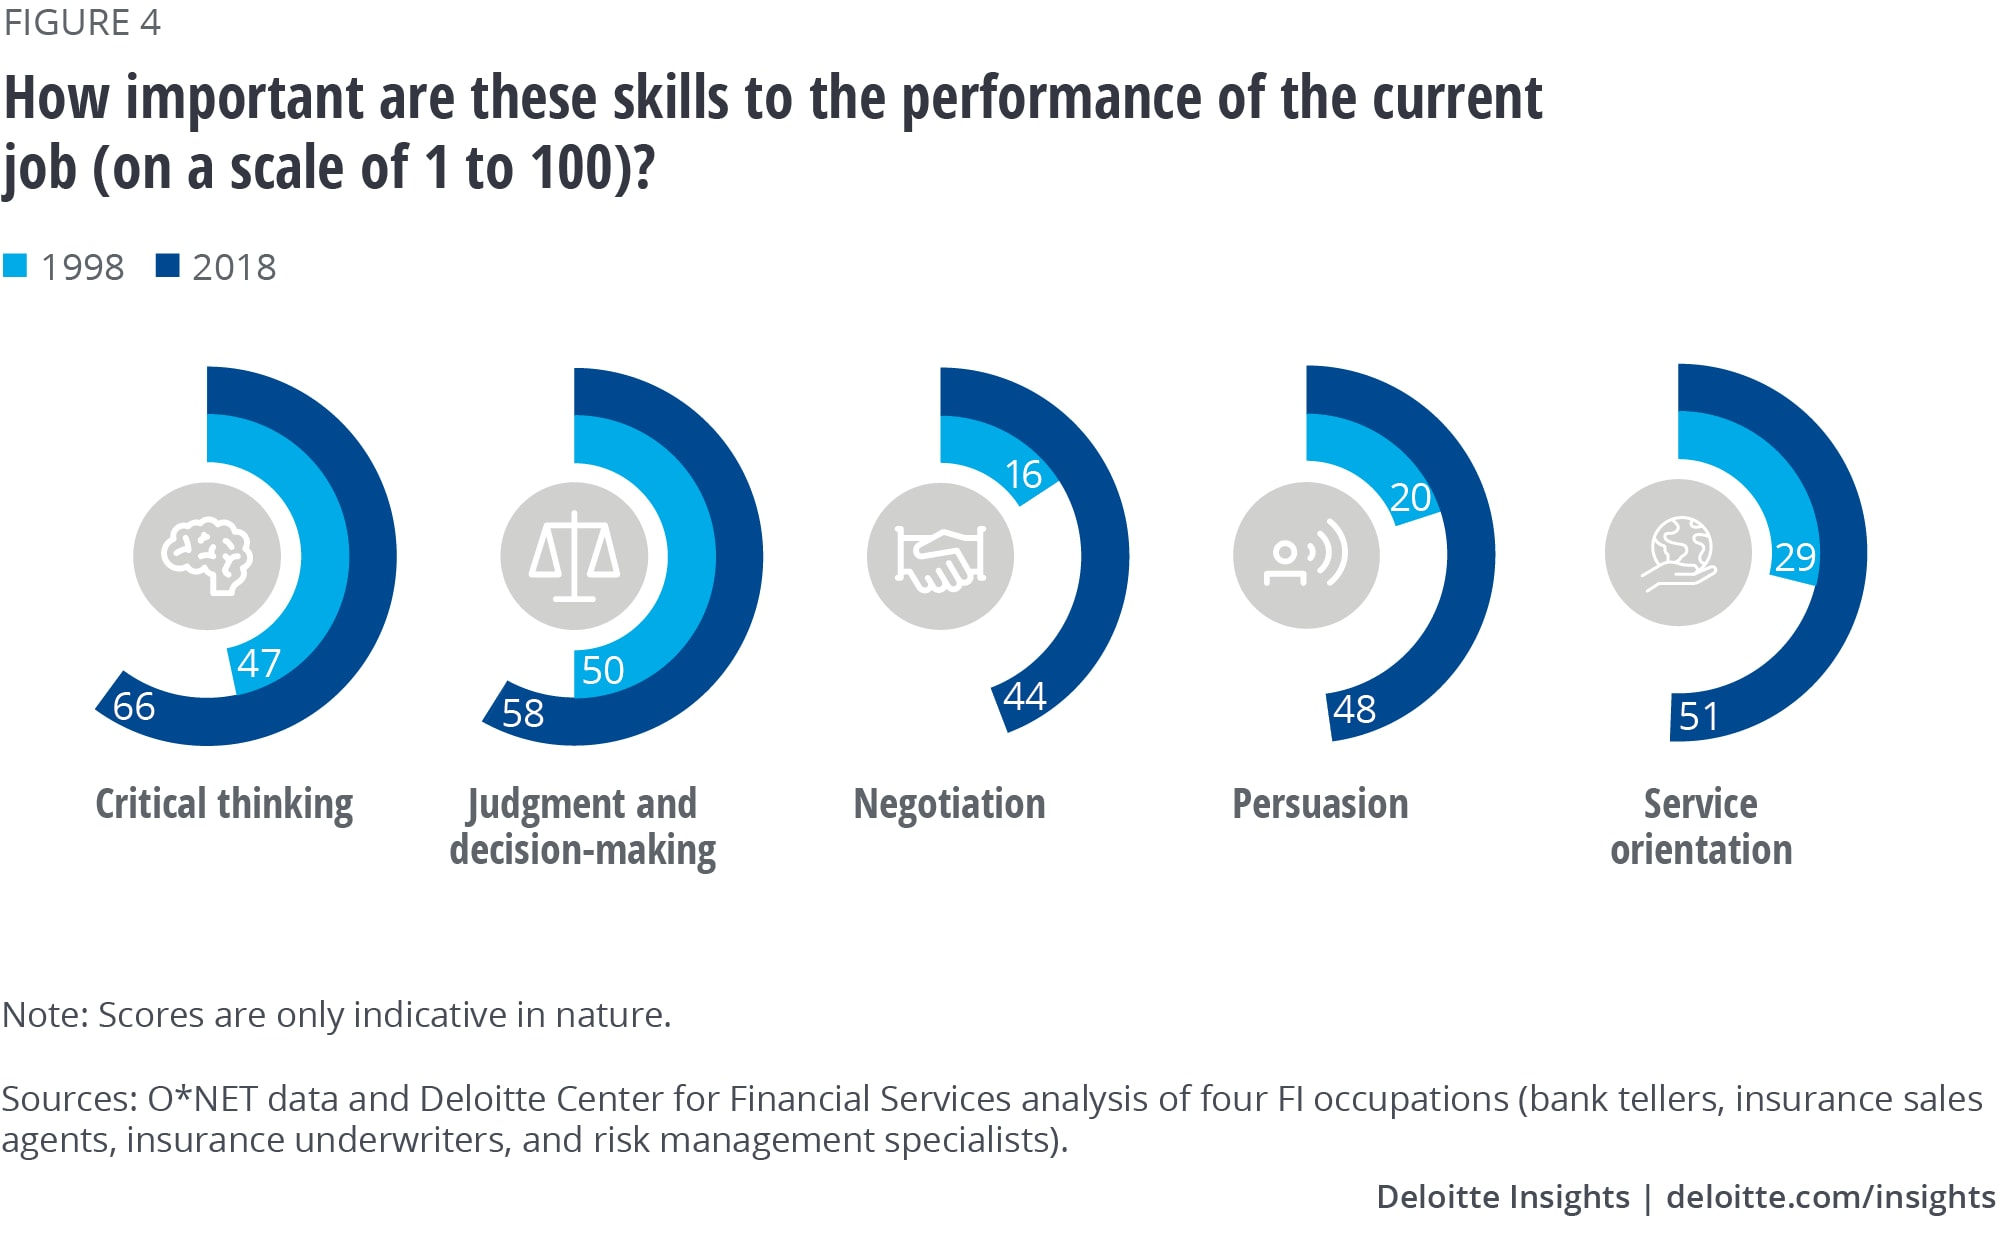 How important are these skills to the performance of the current job (on a scale of 1 to 100)?